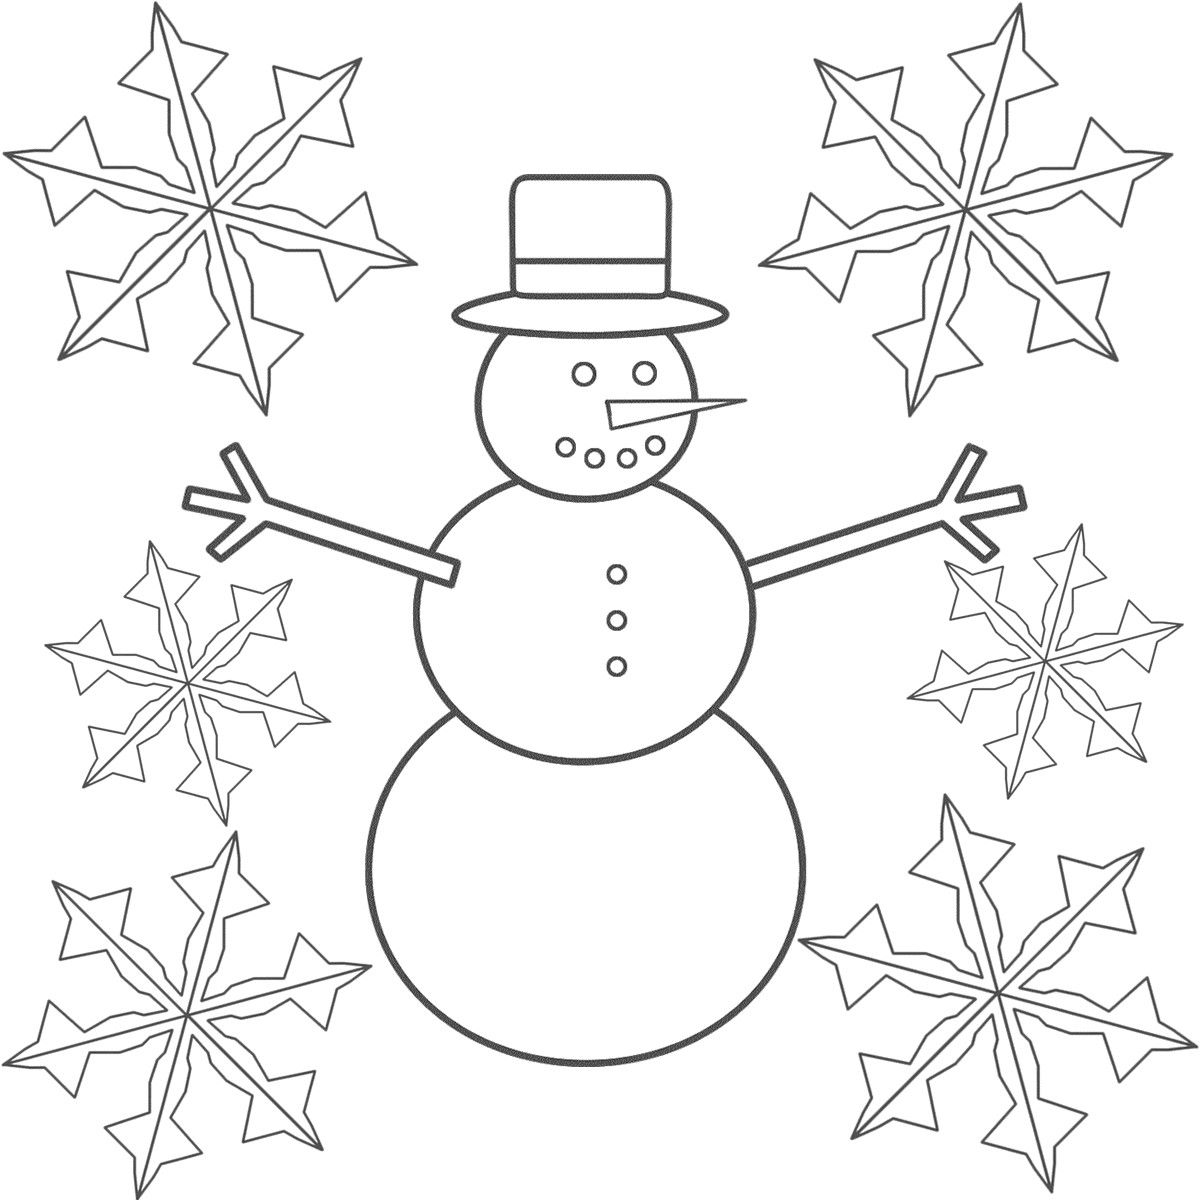 snowflake coloring pages 06 | Colouring & Mandalas | Pinterest ...